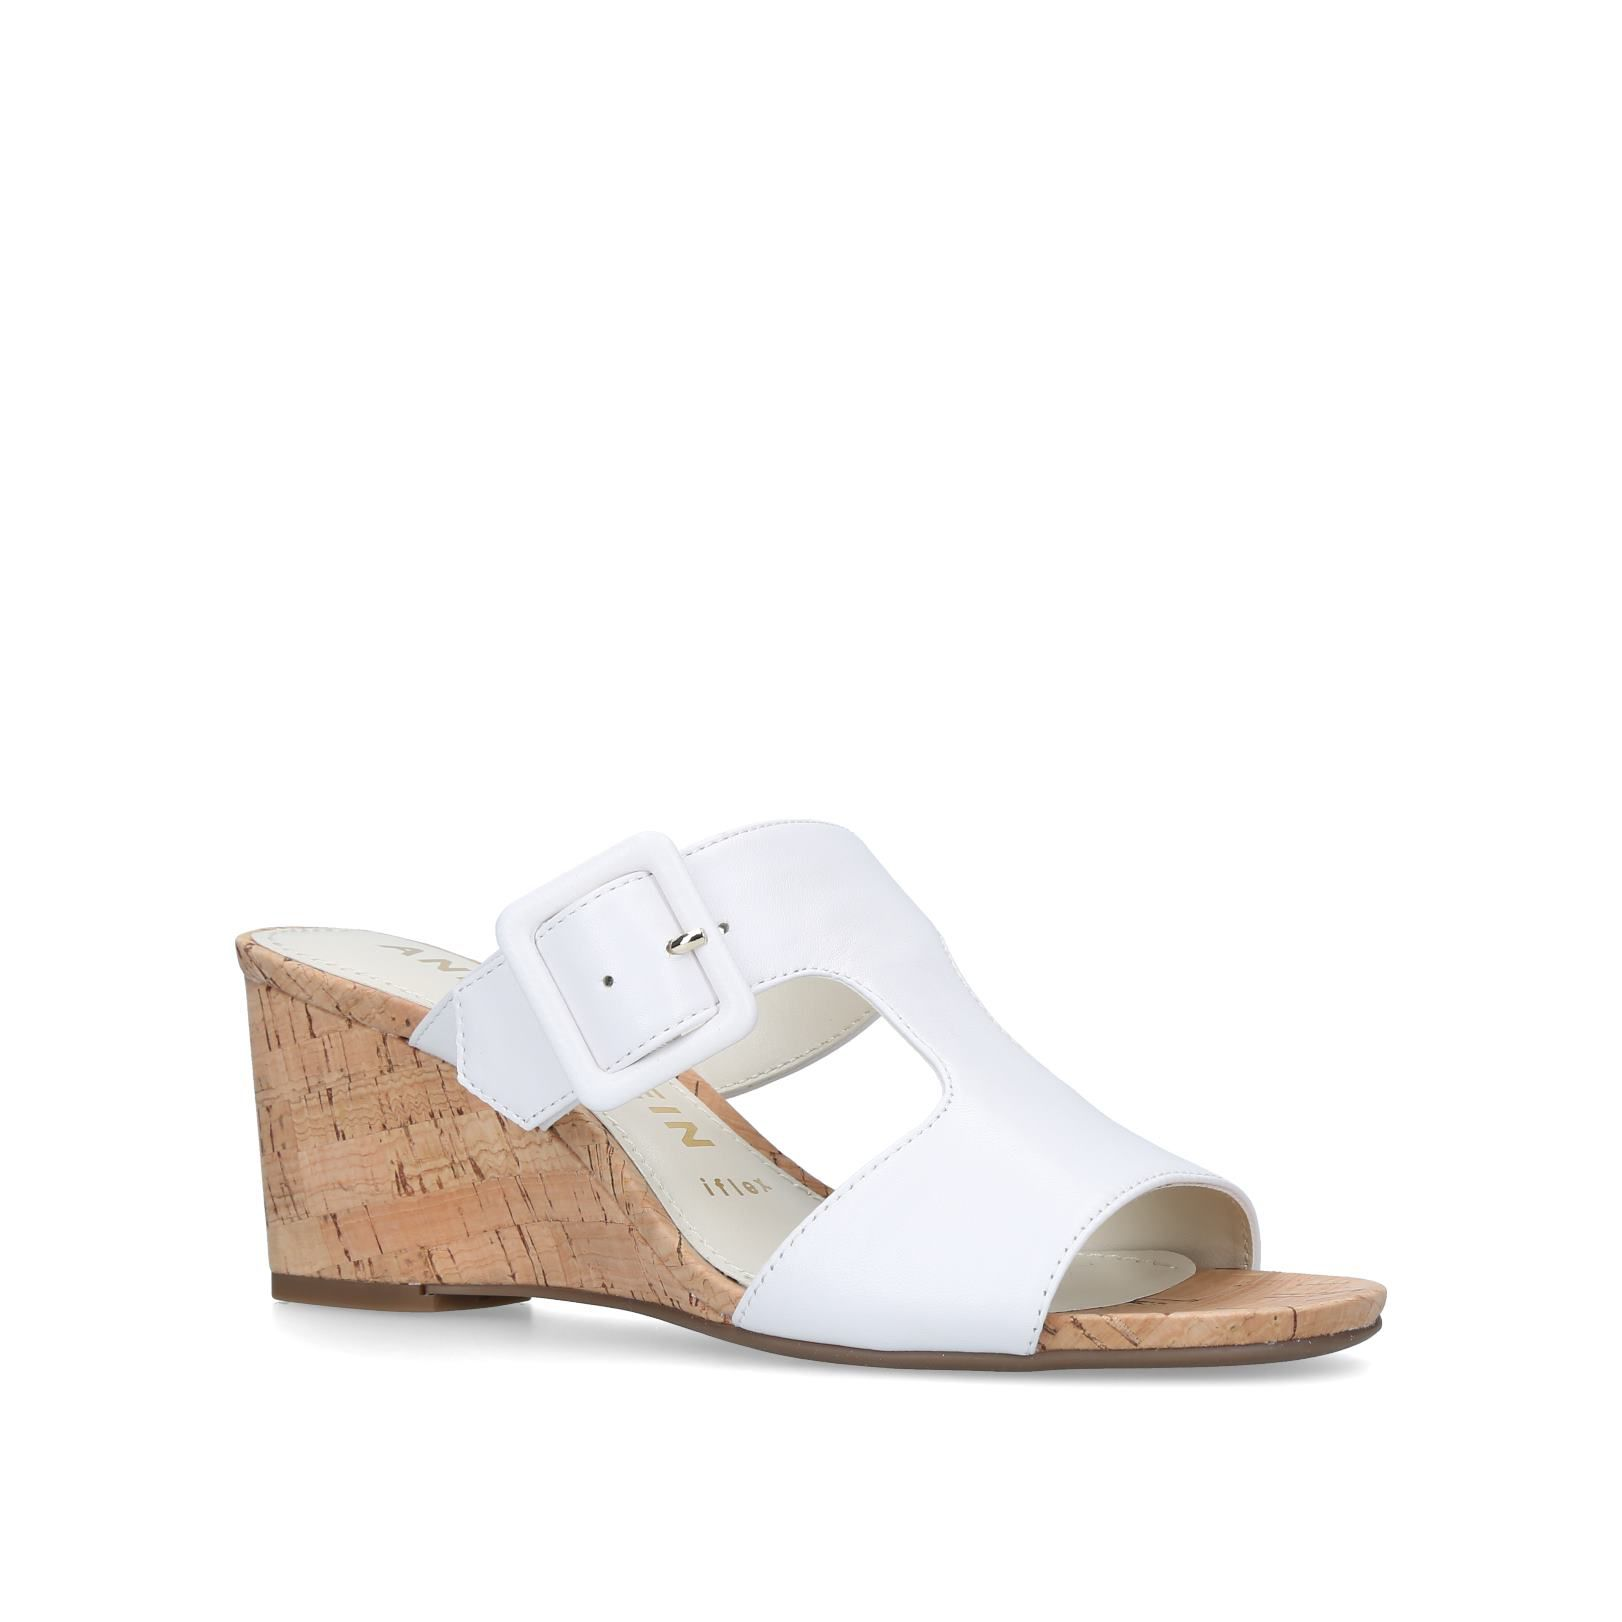 Anne Klein Nilli Sandals, White